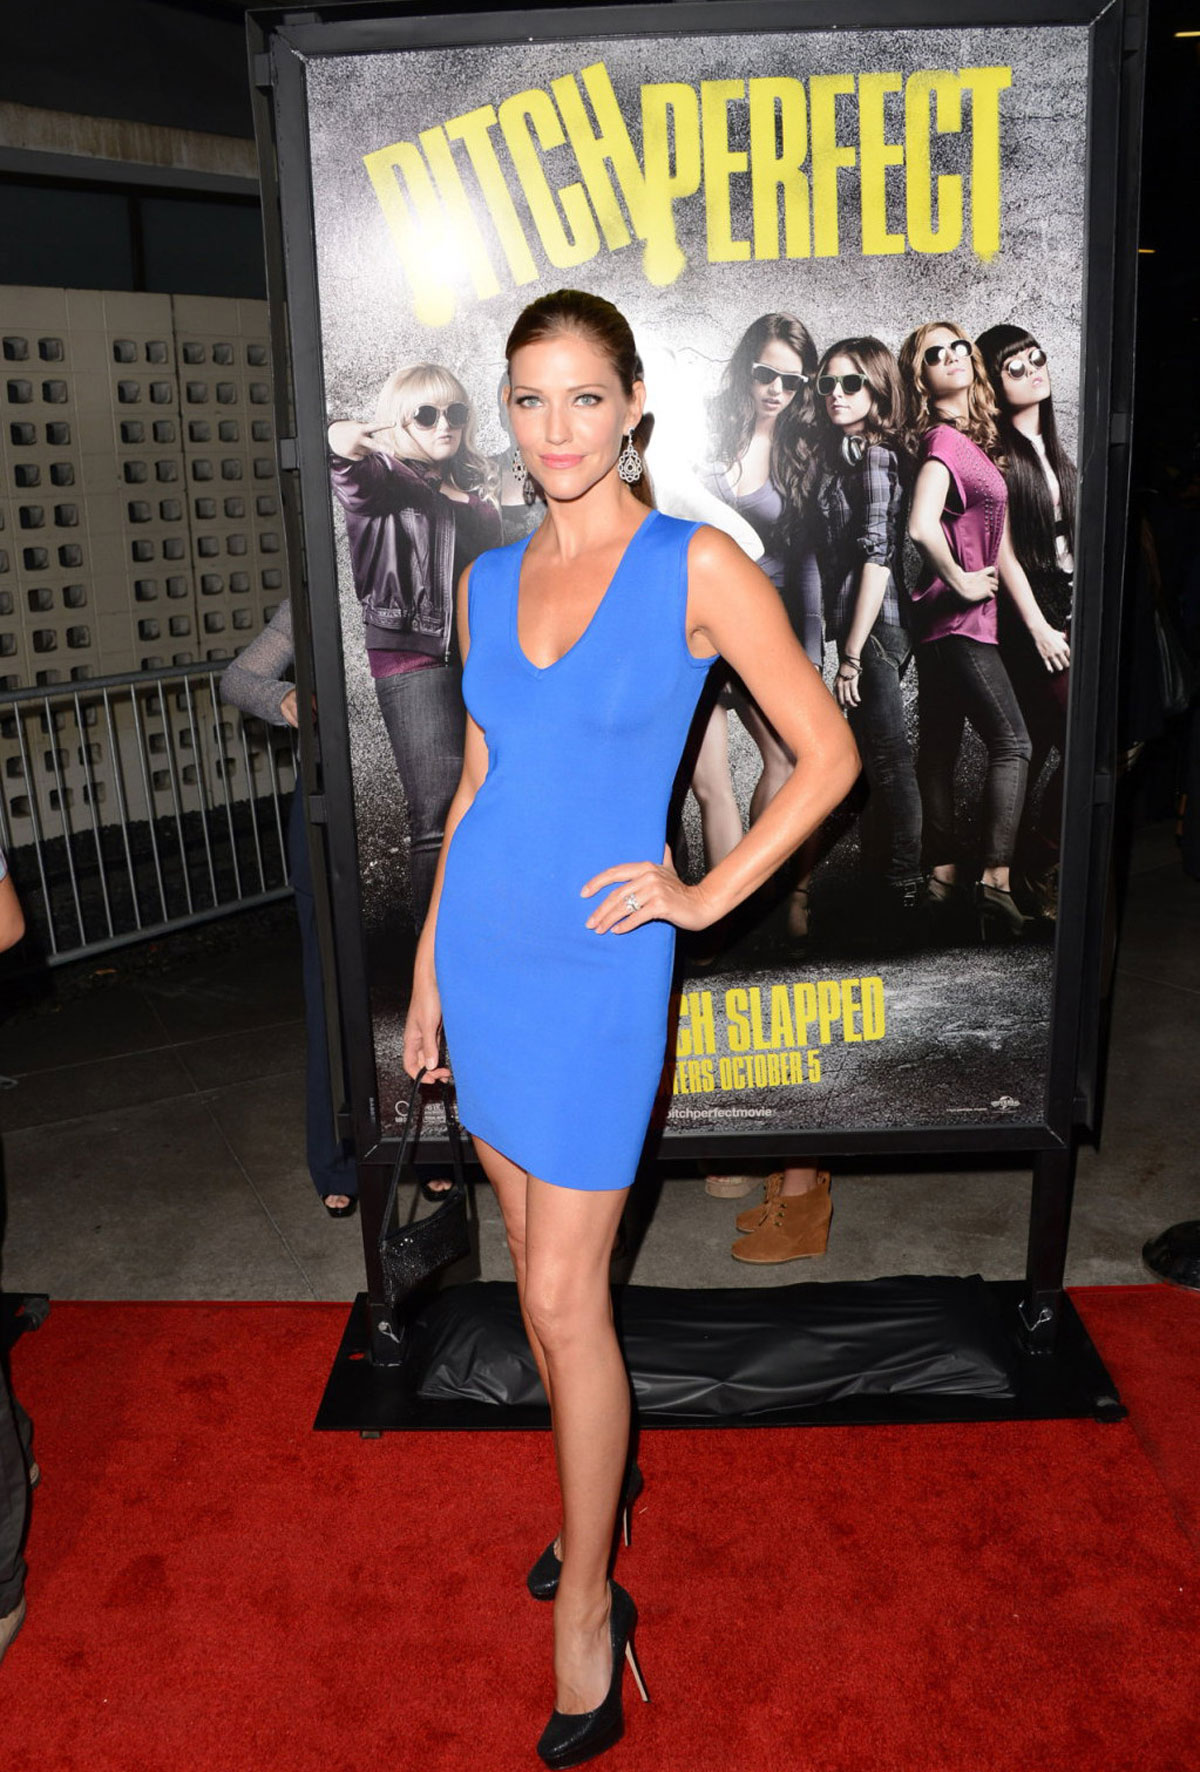 Tricia Helfer At Pitch Perfect Premiere In Los Angeles